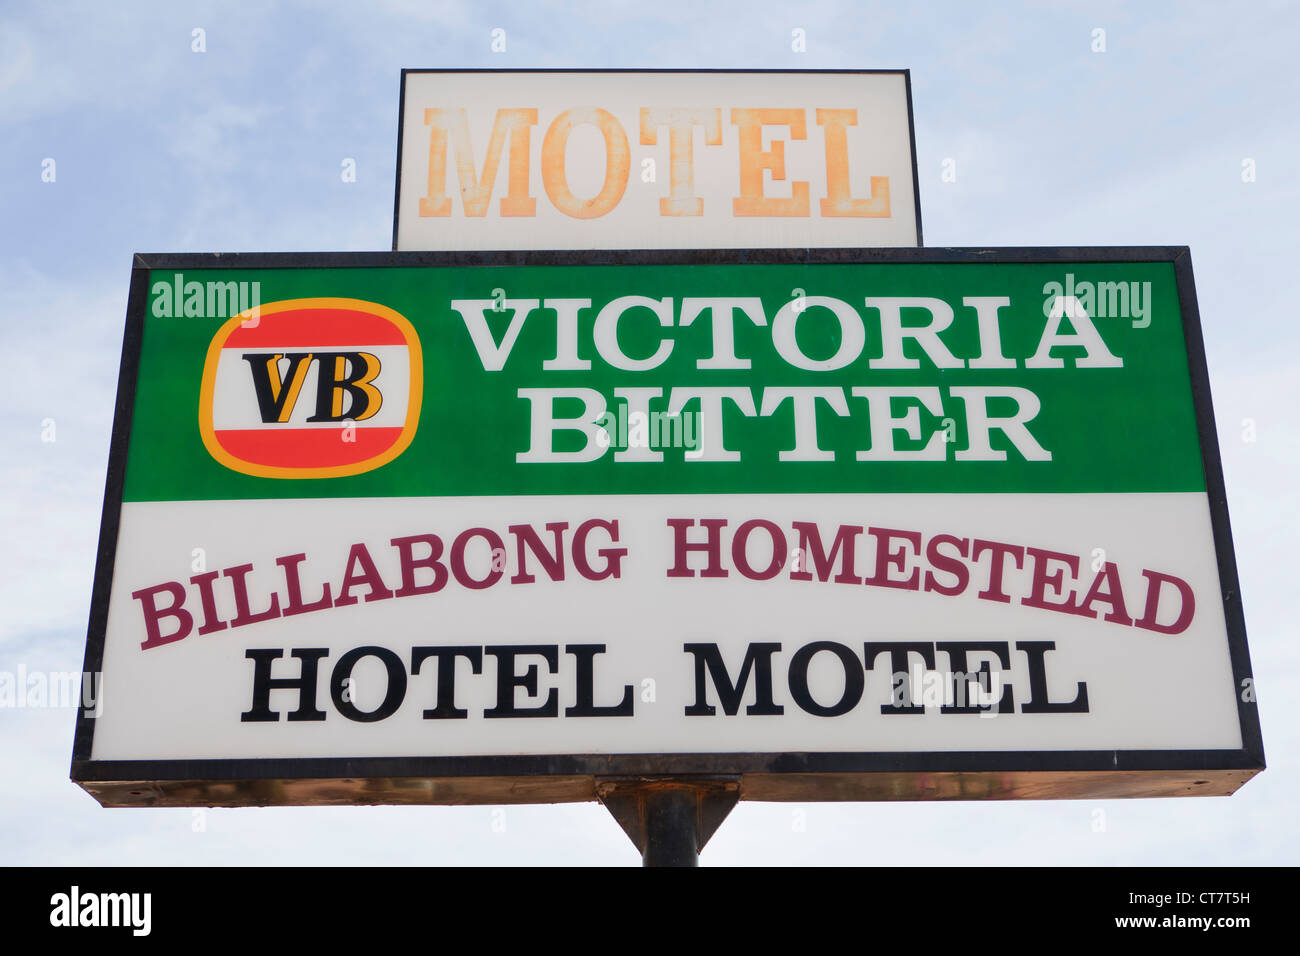 The Billabong Road House in Western Australia. - Stock Image